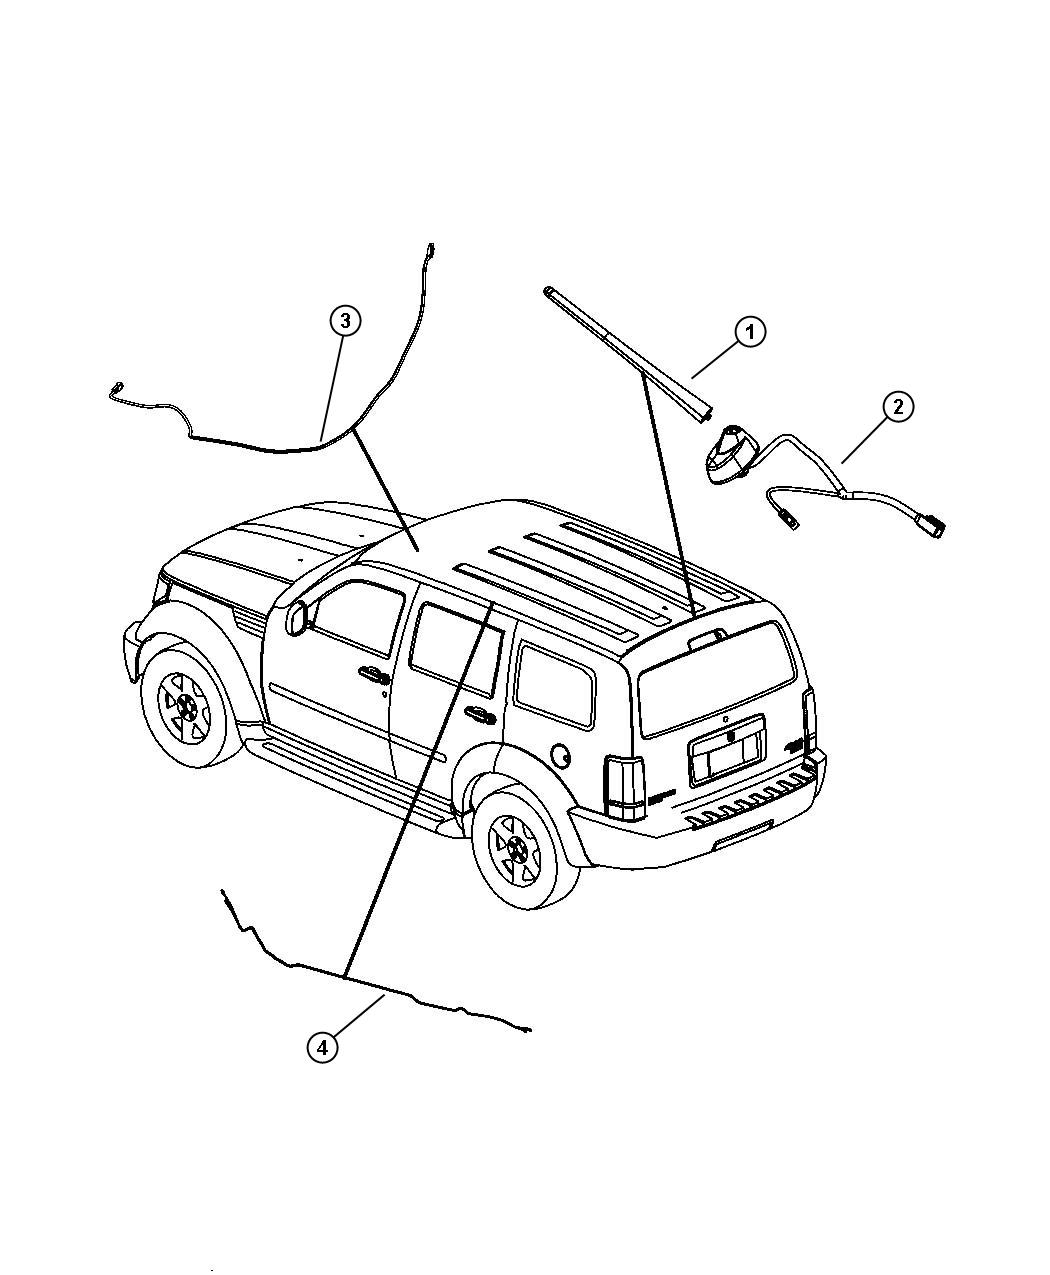 Chrysler Sebring Antenna Used For Base Cable And